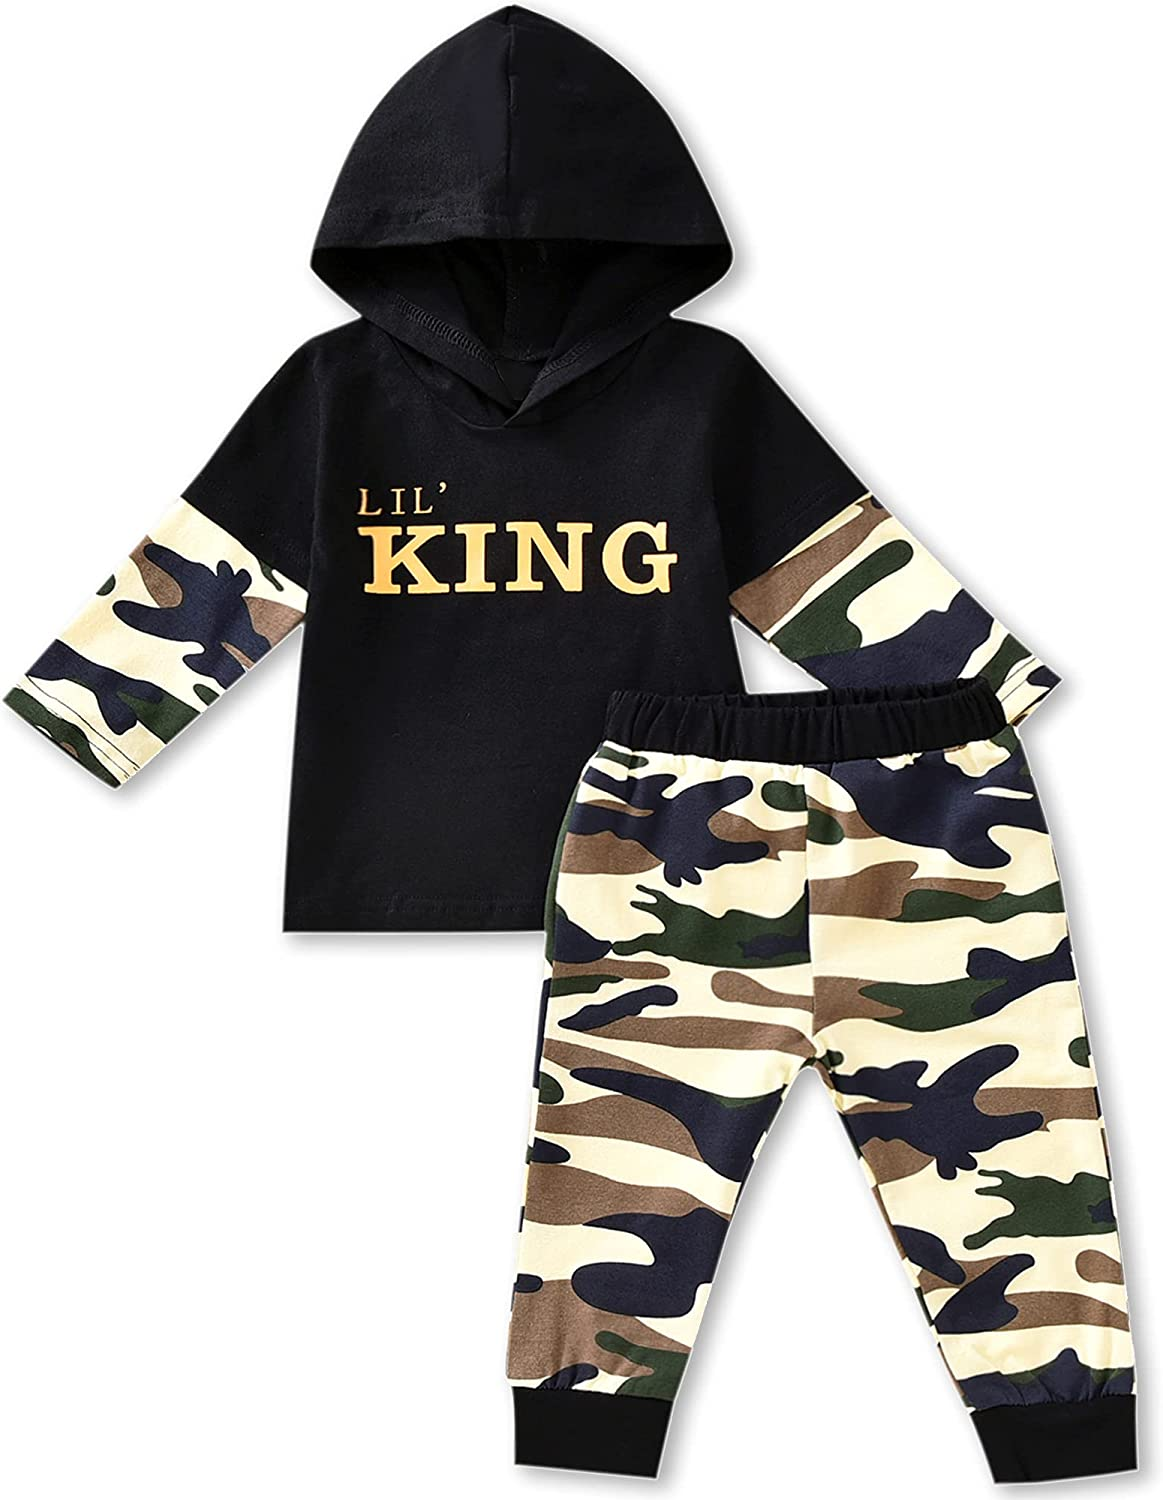 Toddler Baby Boy Outfit Clothes LittLe Kids Long Sleeve Hoodie Sweatshirt Camouflage Pants Set Fall Winter Clothing